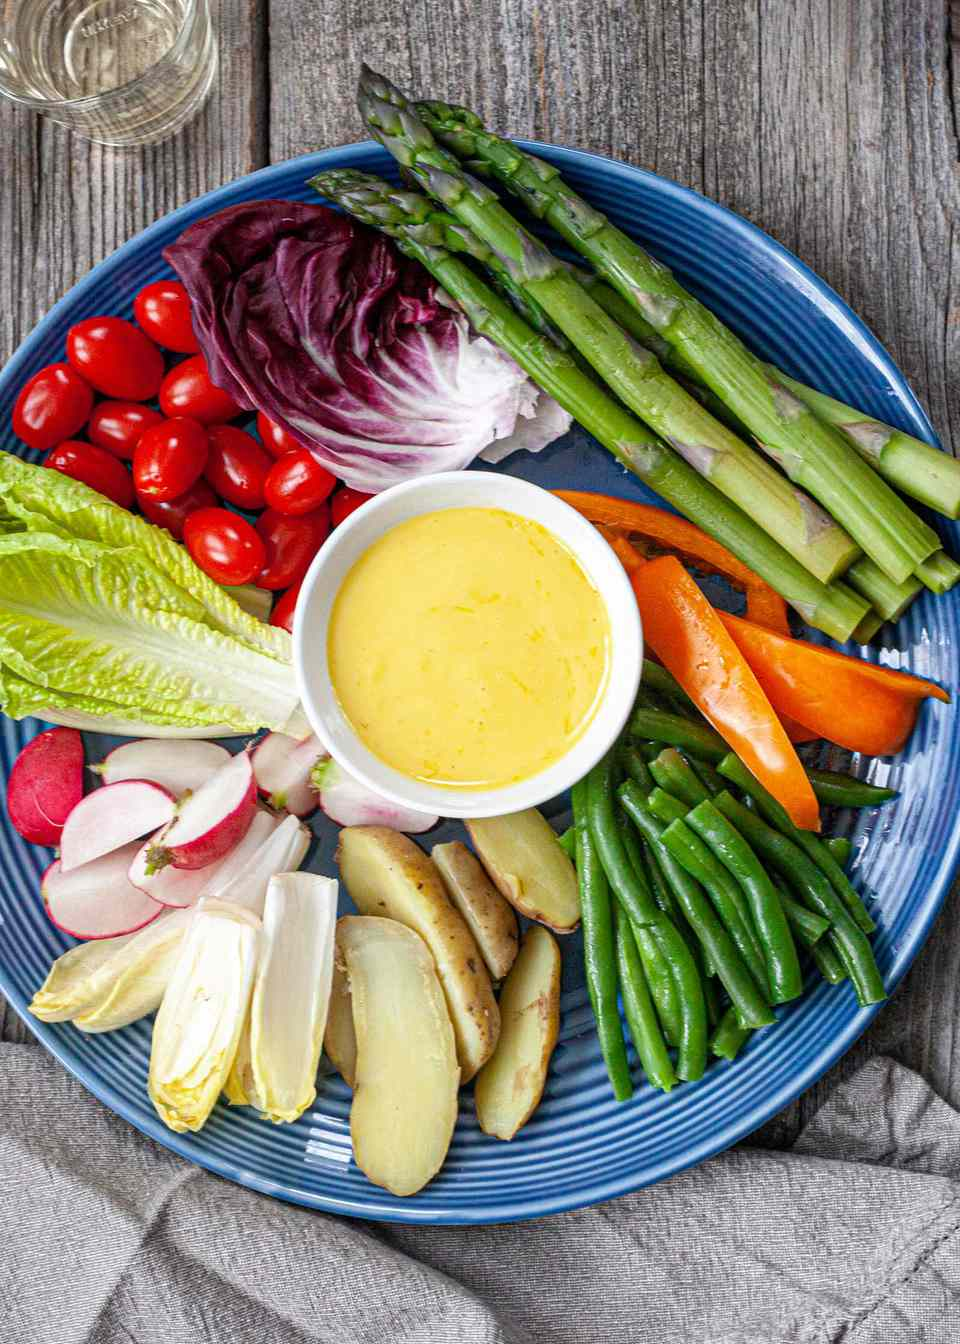 A plate with homemade aioli in a small bowl in the center of a plate. The aioli sauce is surrounded by a variety of steamed and fresh vegetables.